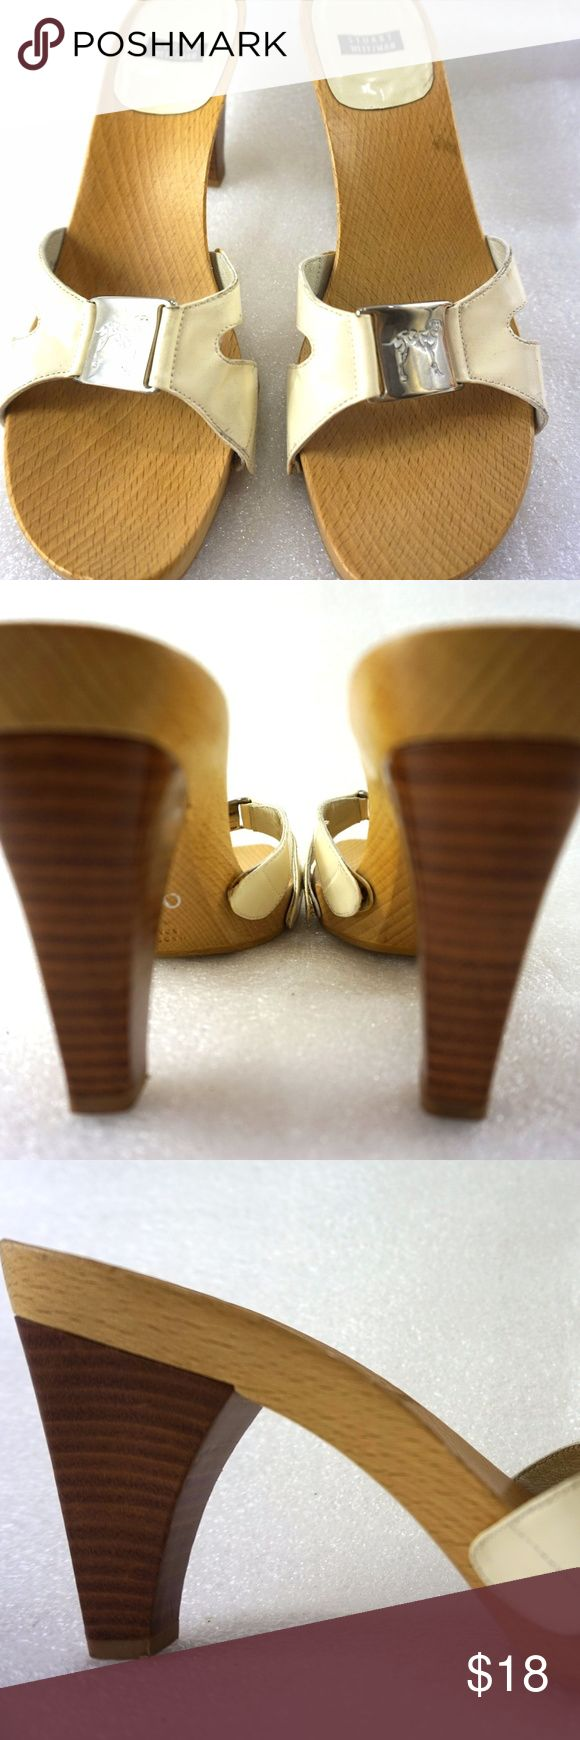 """Stuart Weitzman Wood Heel Sandals White Strap 8M For sale is a pair of wooden open toe heel sandals from Stuart Weitzman  Size: 8M Length: 9"""" from back of heel to front of toe measured with shoe standing up flat to floor Width: 3.1"""" at widest part of sole Heel: 3.6""""  I will ship your shoes within 24 hours  Thank you Stuart Weitzman Shoes Sandals"""